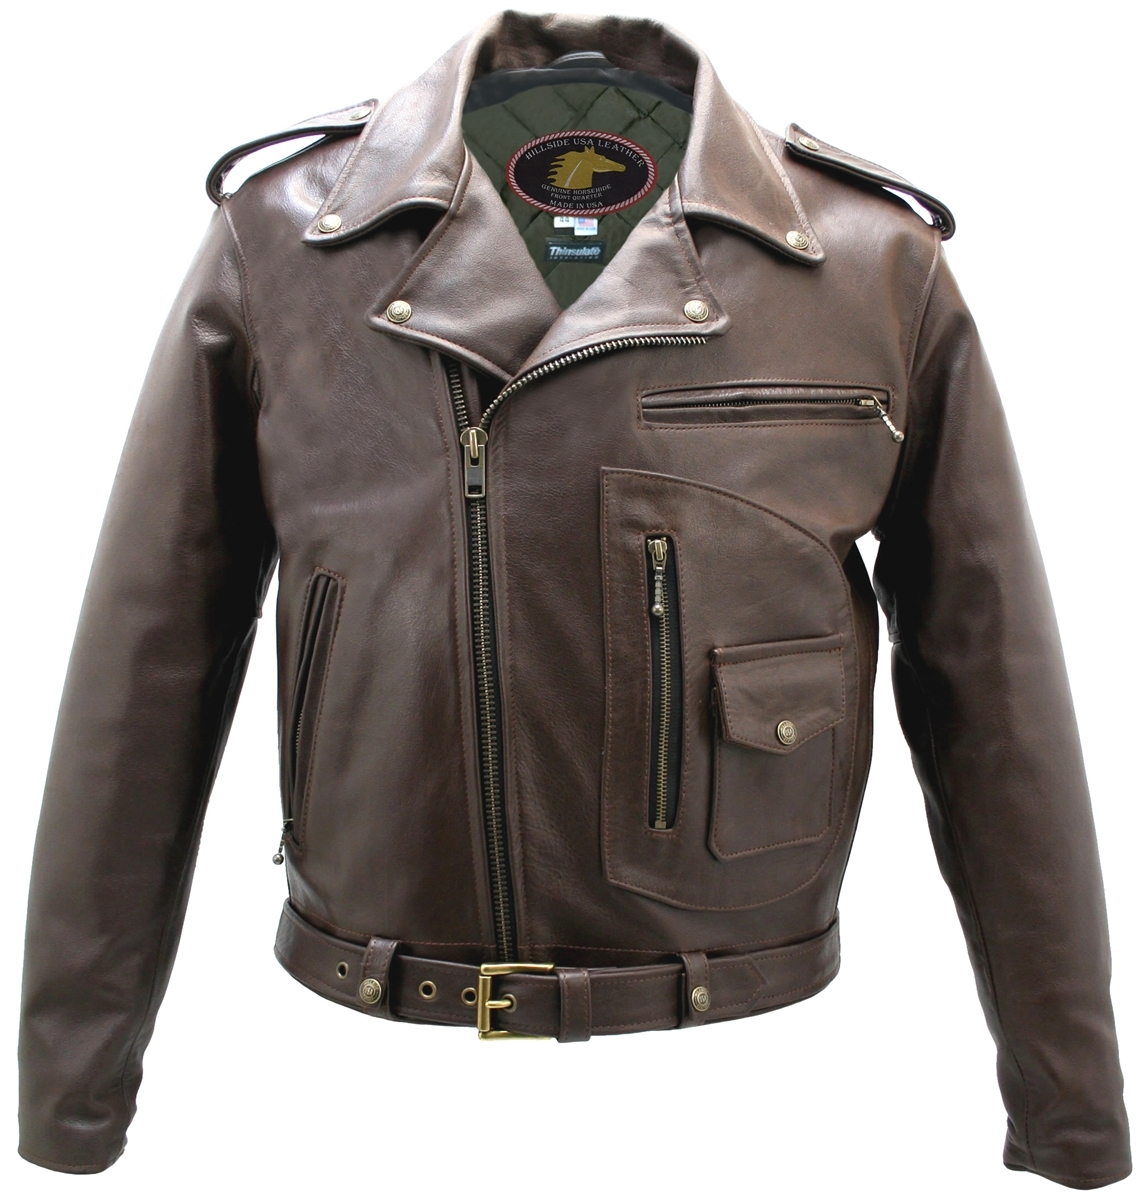 0a6b6fd21a7 Gallanto Eddie Mens 3 4 Motorcycle Biker Brown Distressed Vintage Leather  Jacket (7XL). Brown D Pocket Horsehide Motorcycle Jacket. Tap to expand